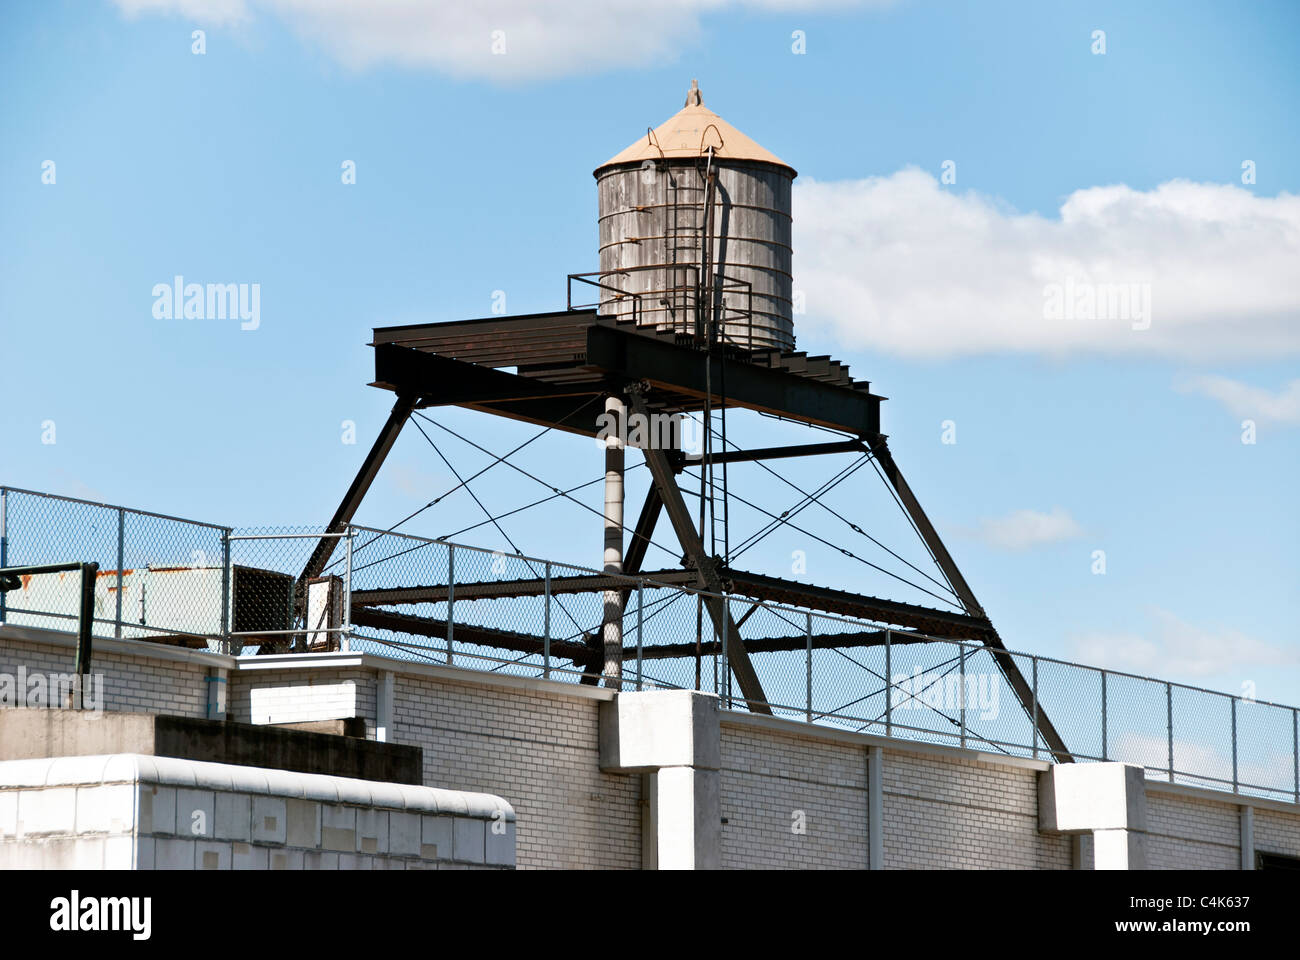 Steel Frame Towers : Typical new york city rooftop wood water tower on steel